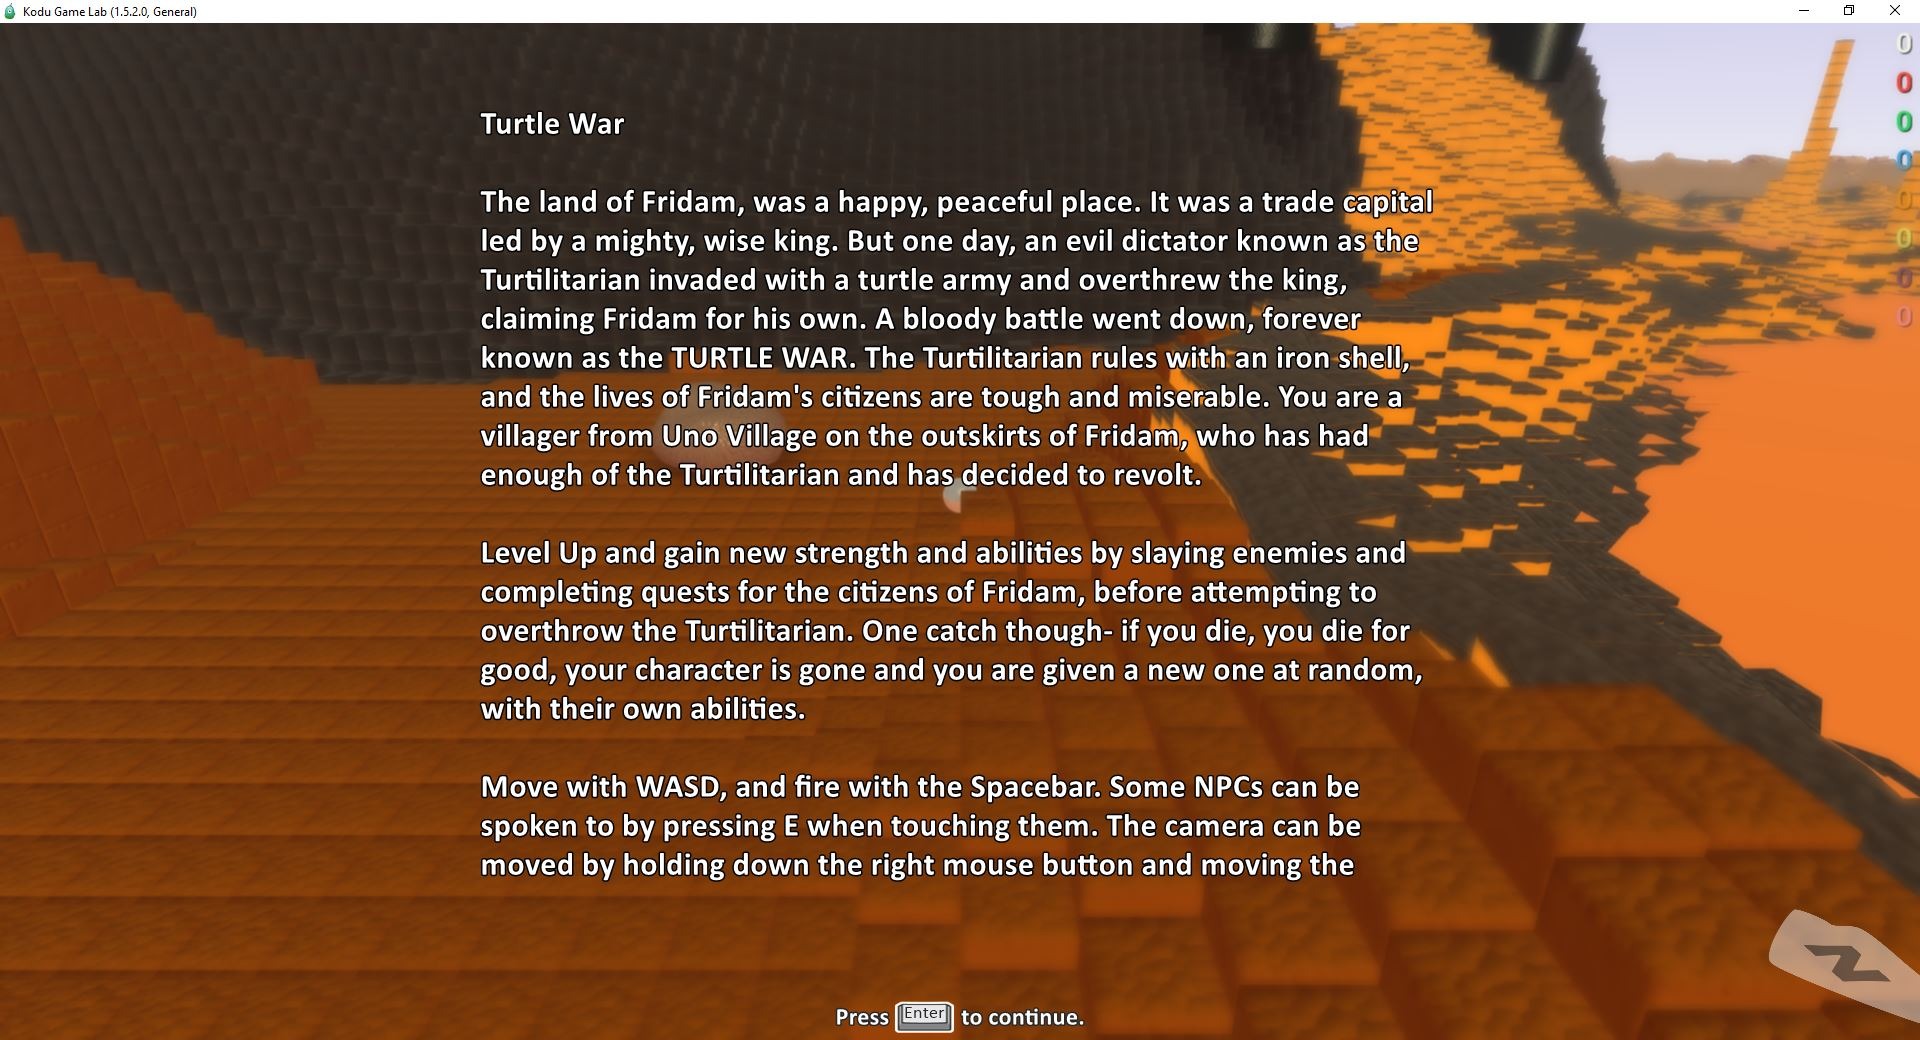 Turtle War Intro